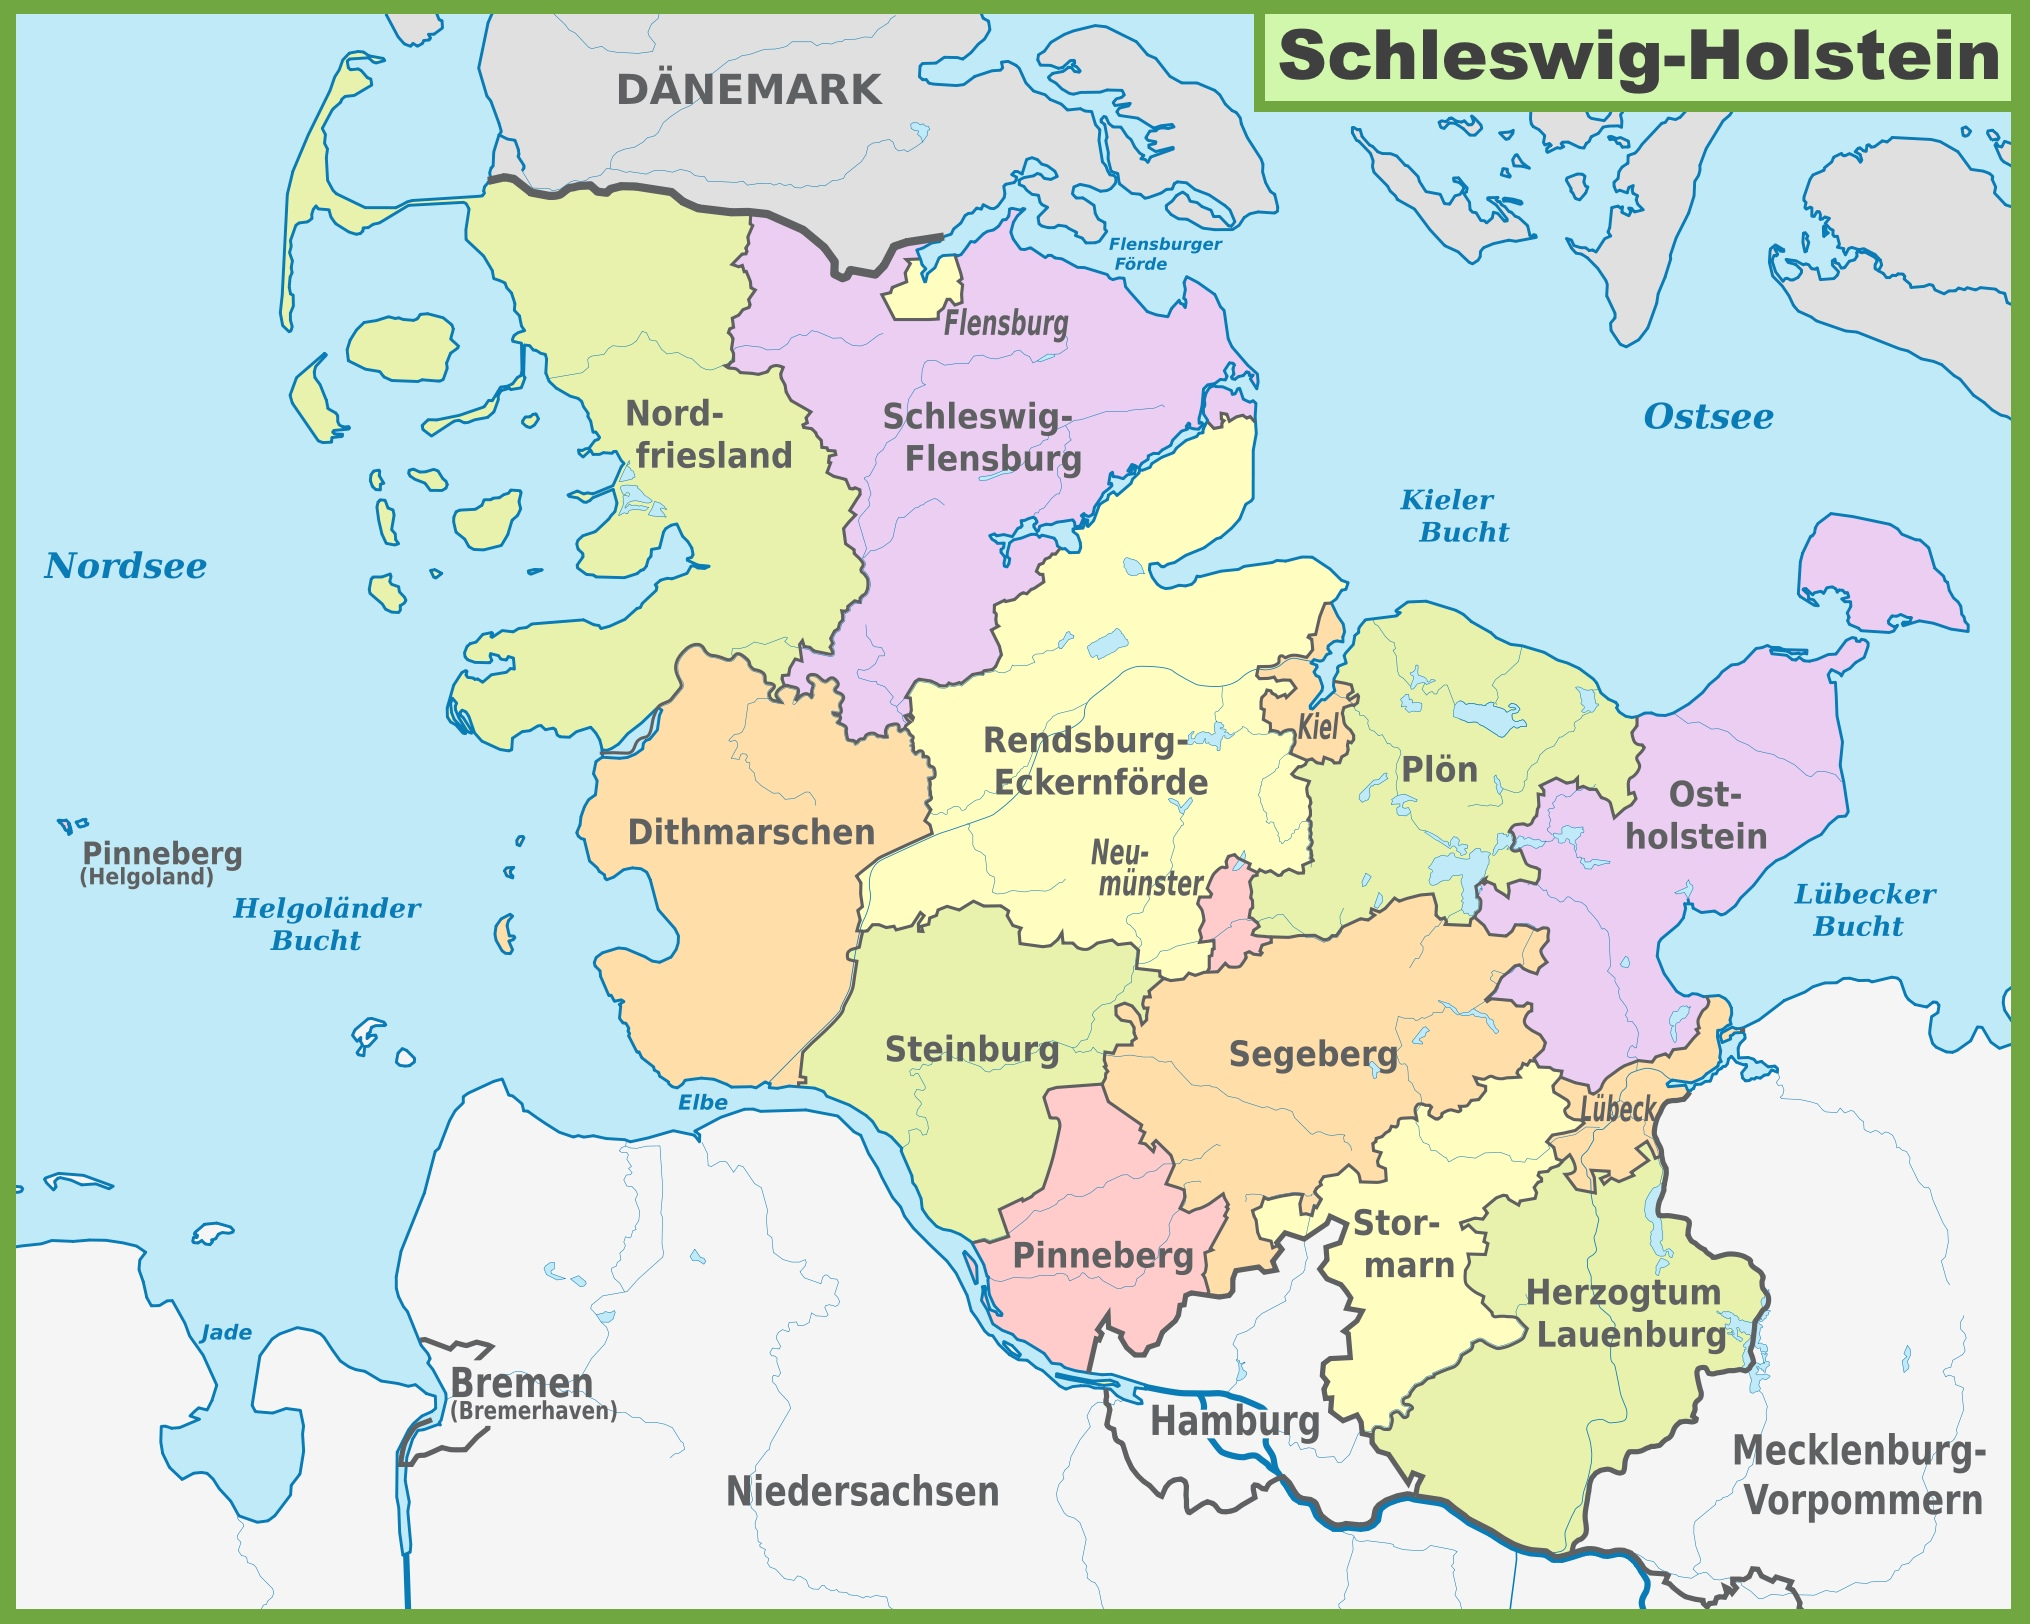 Administrative divisions map of SchleswigHolstein